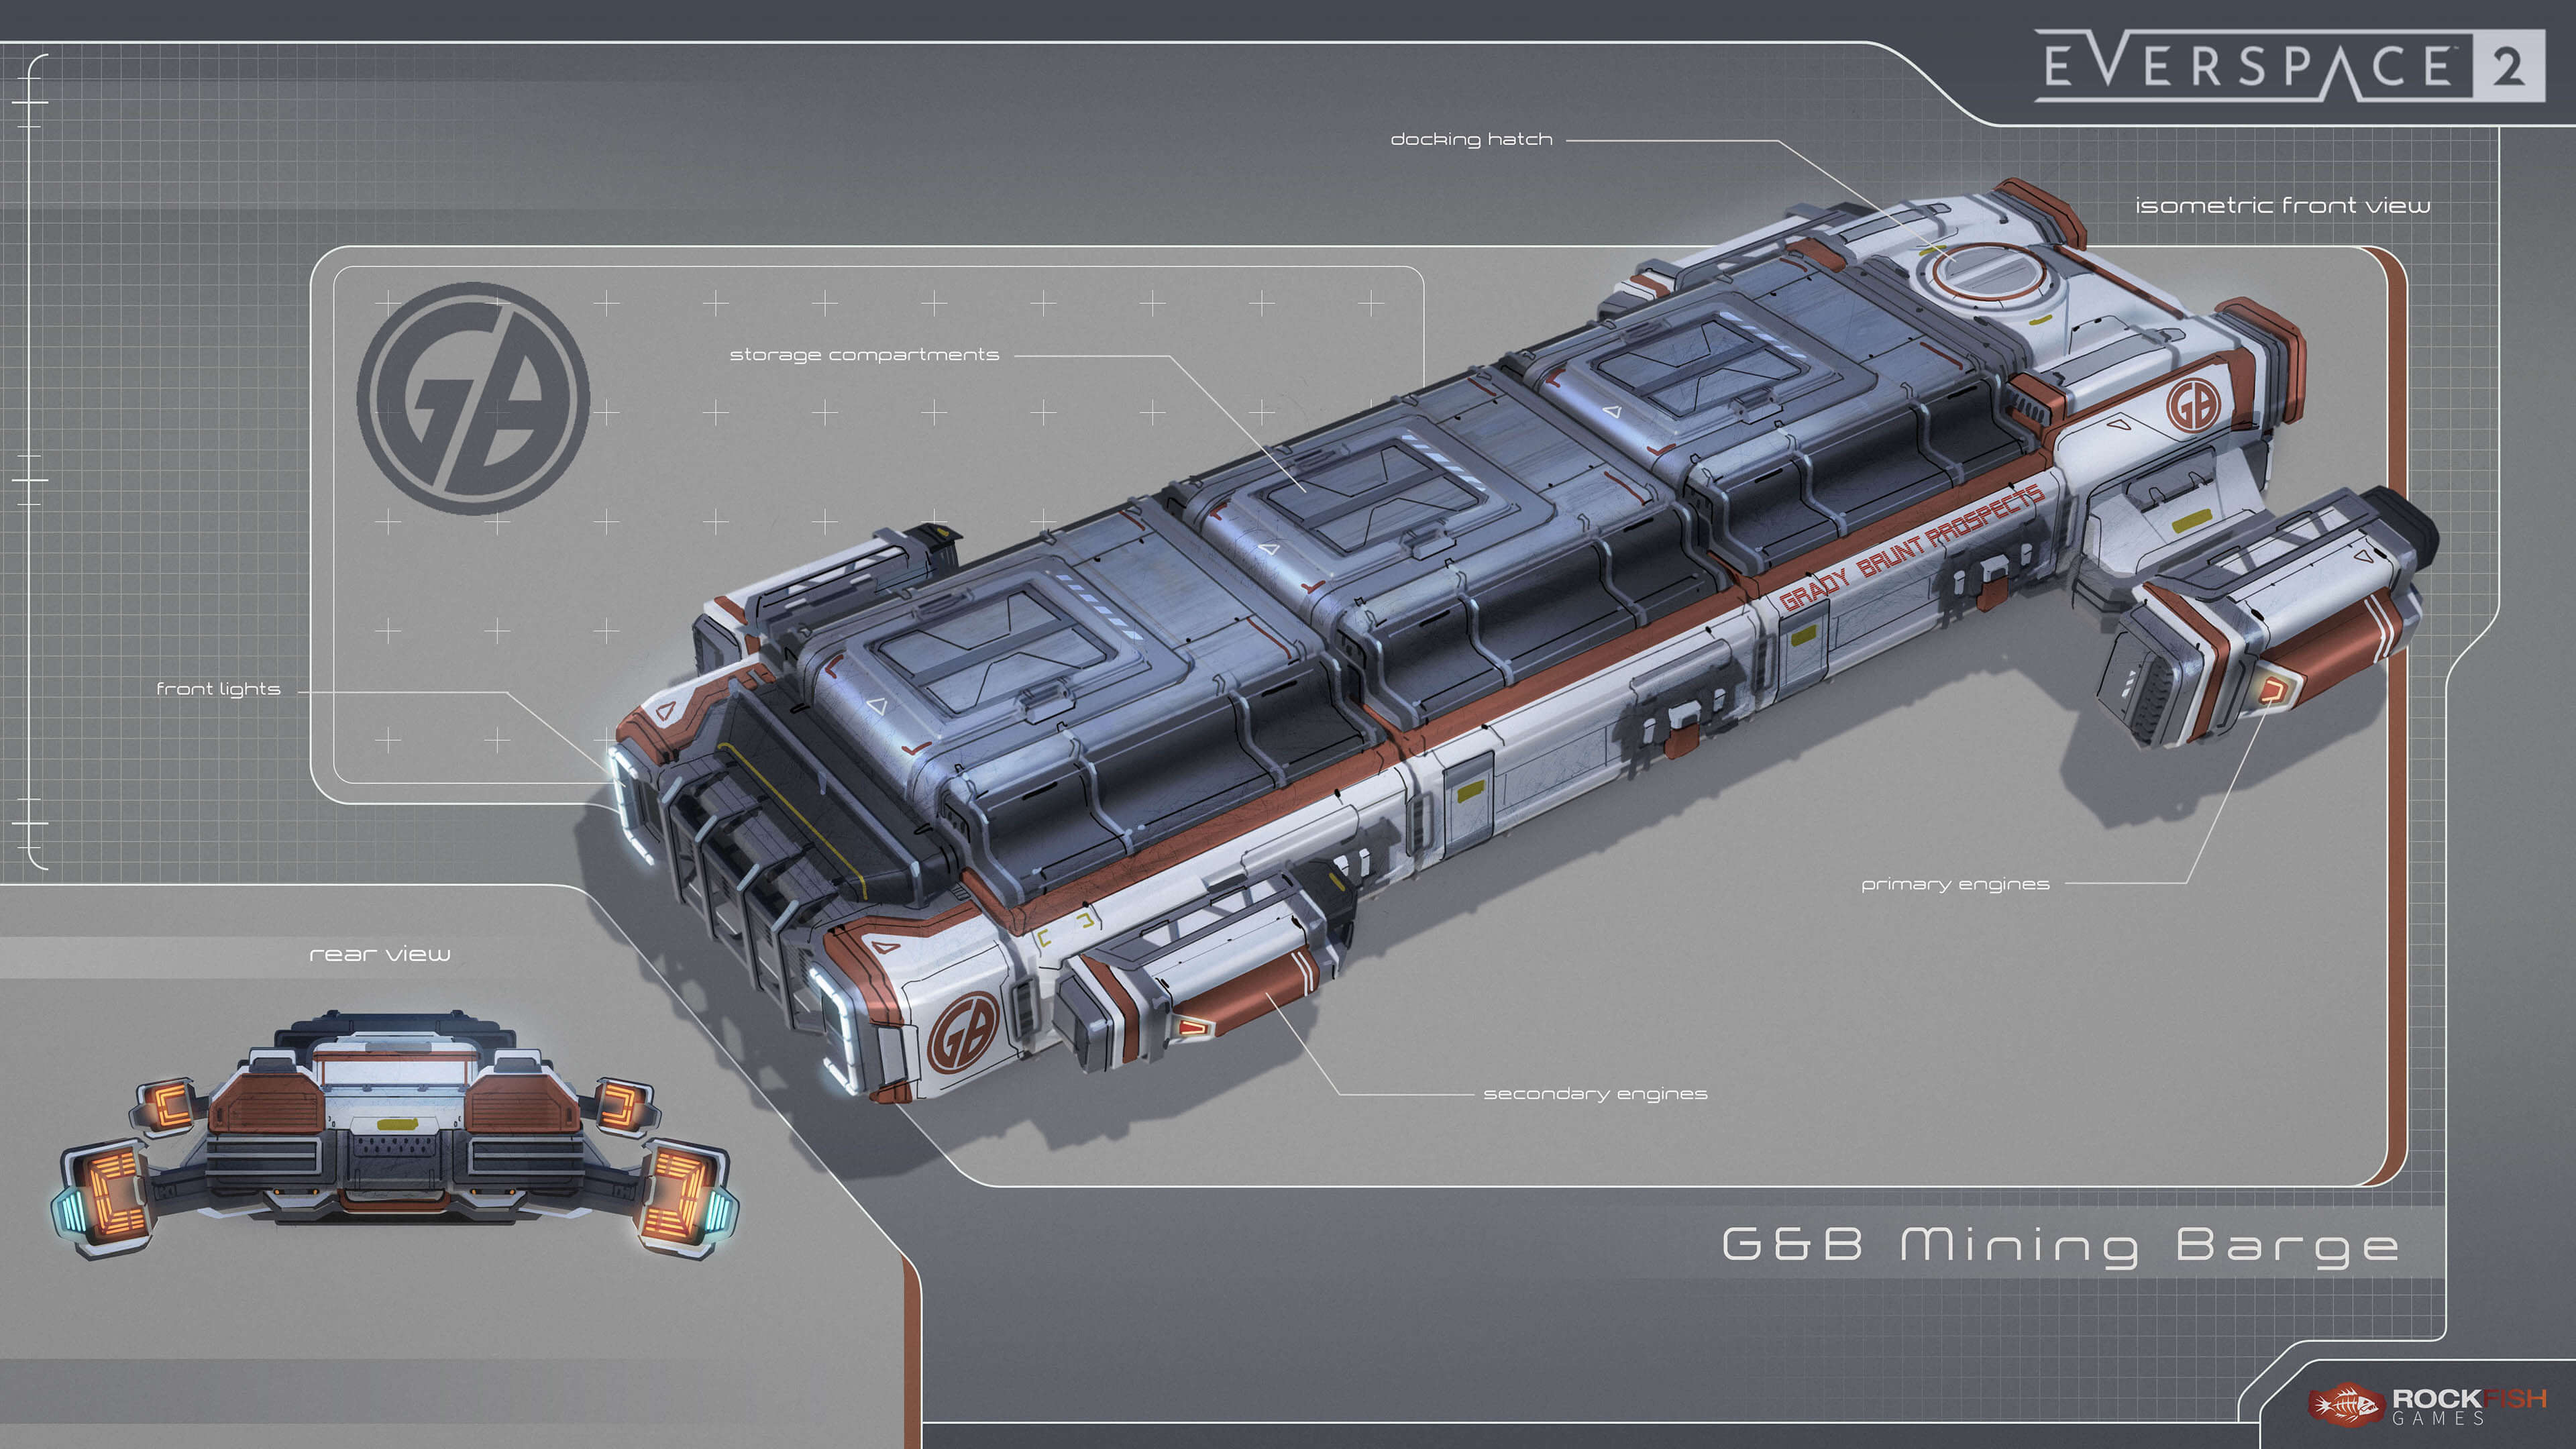 grady and brunt everspace 2 mining barge